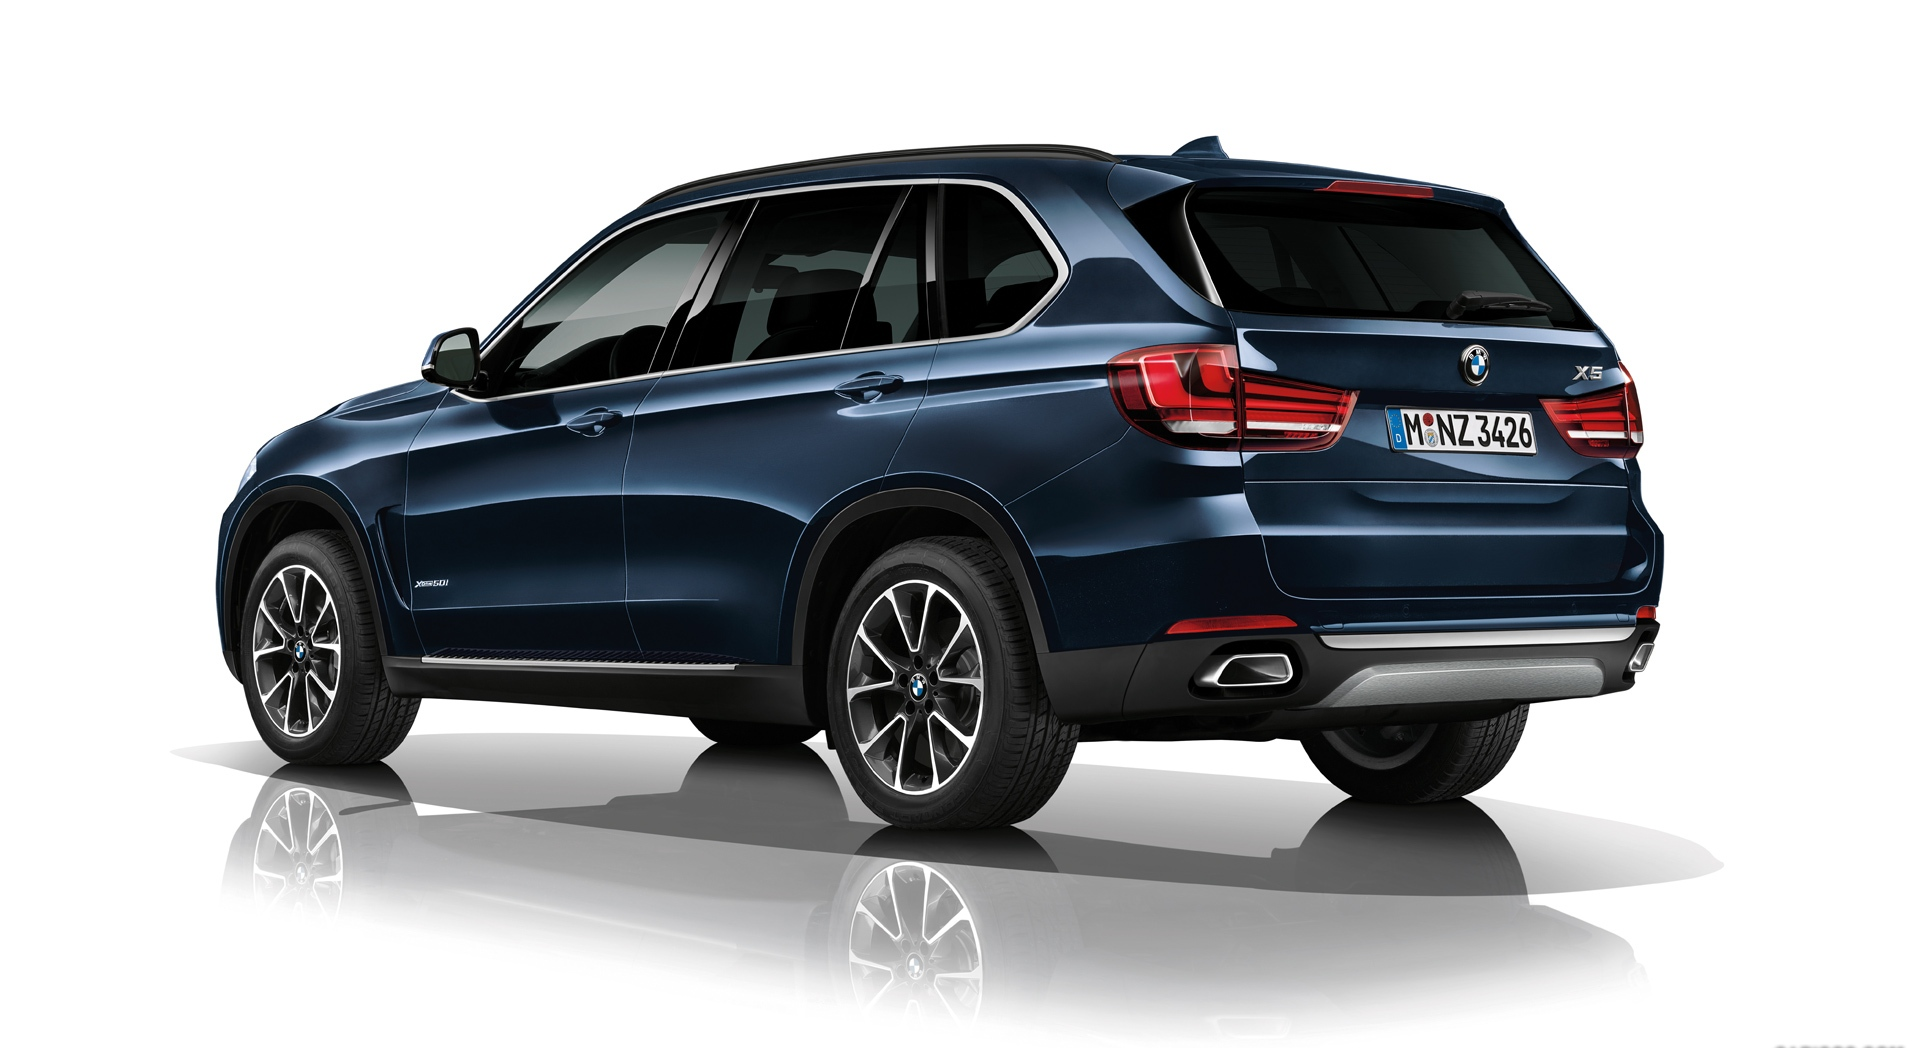 bmw x5 security plus back